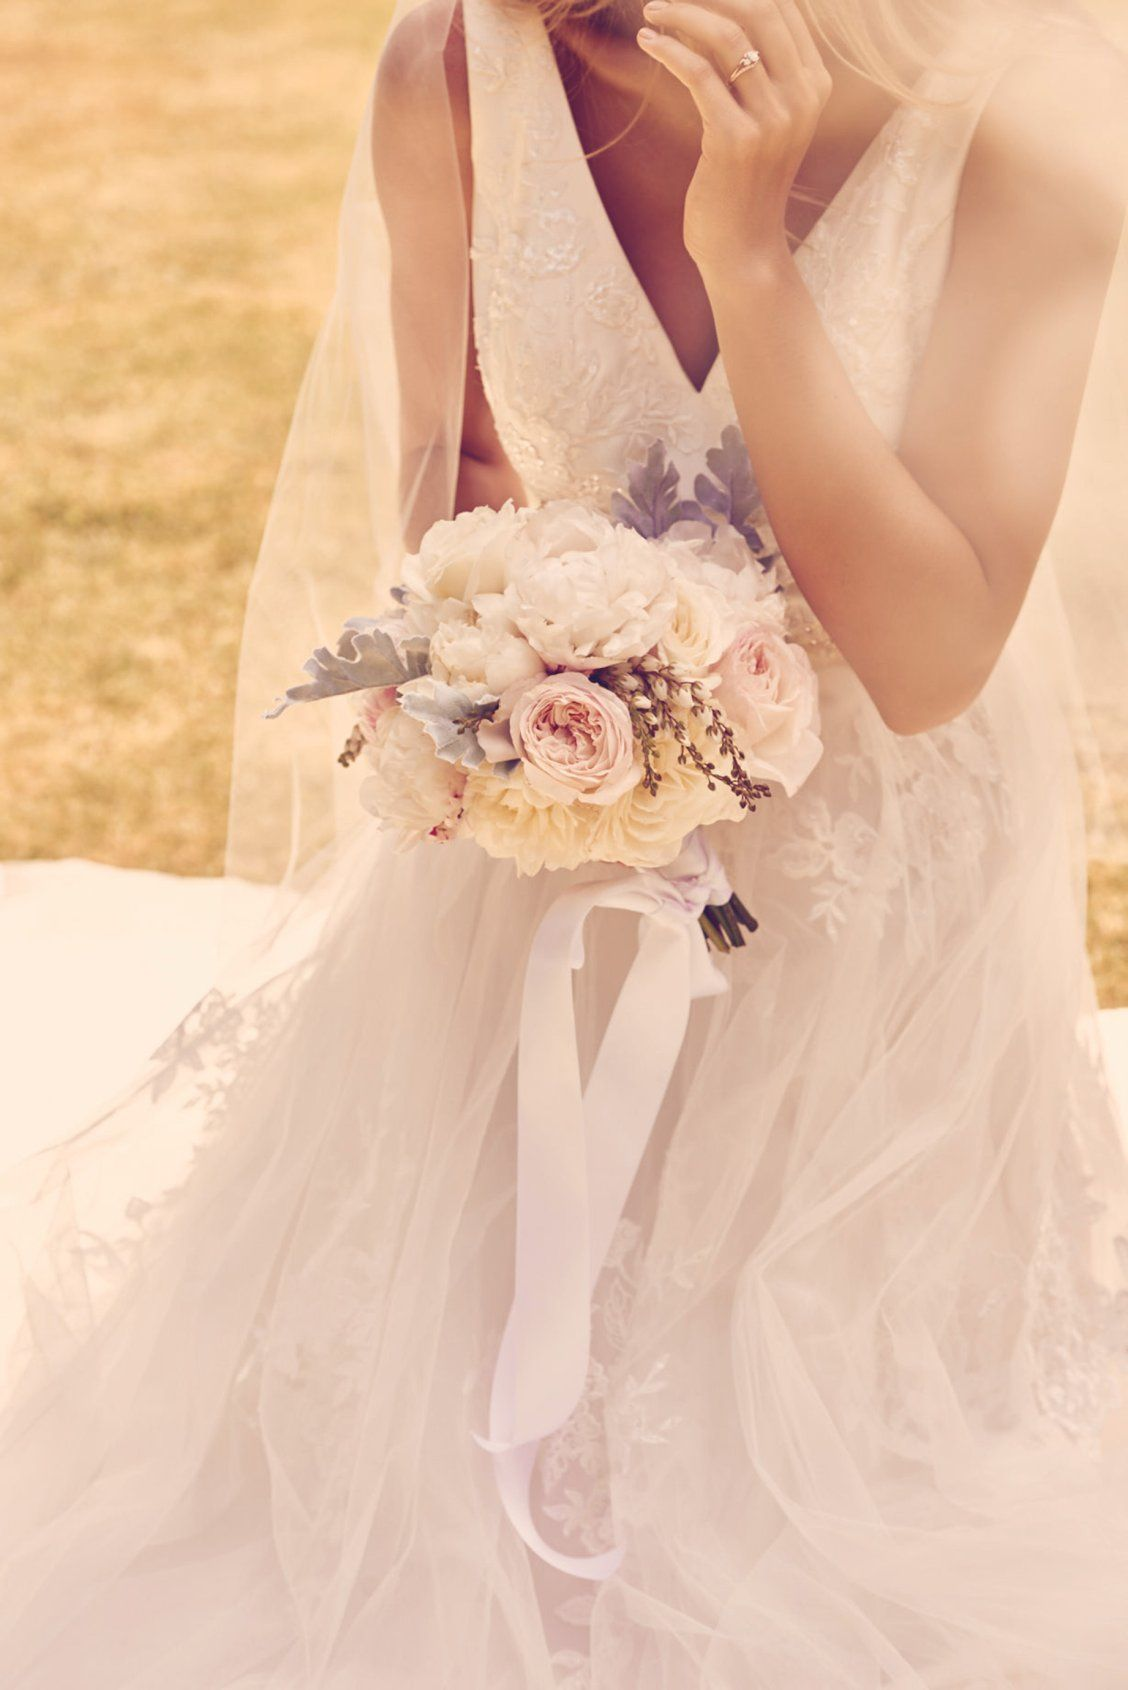 A Bright White And Pastel Bridal Bouquet That Looks Lovely Against